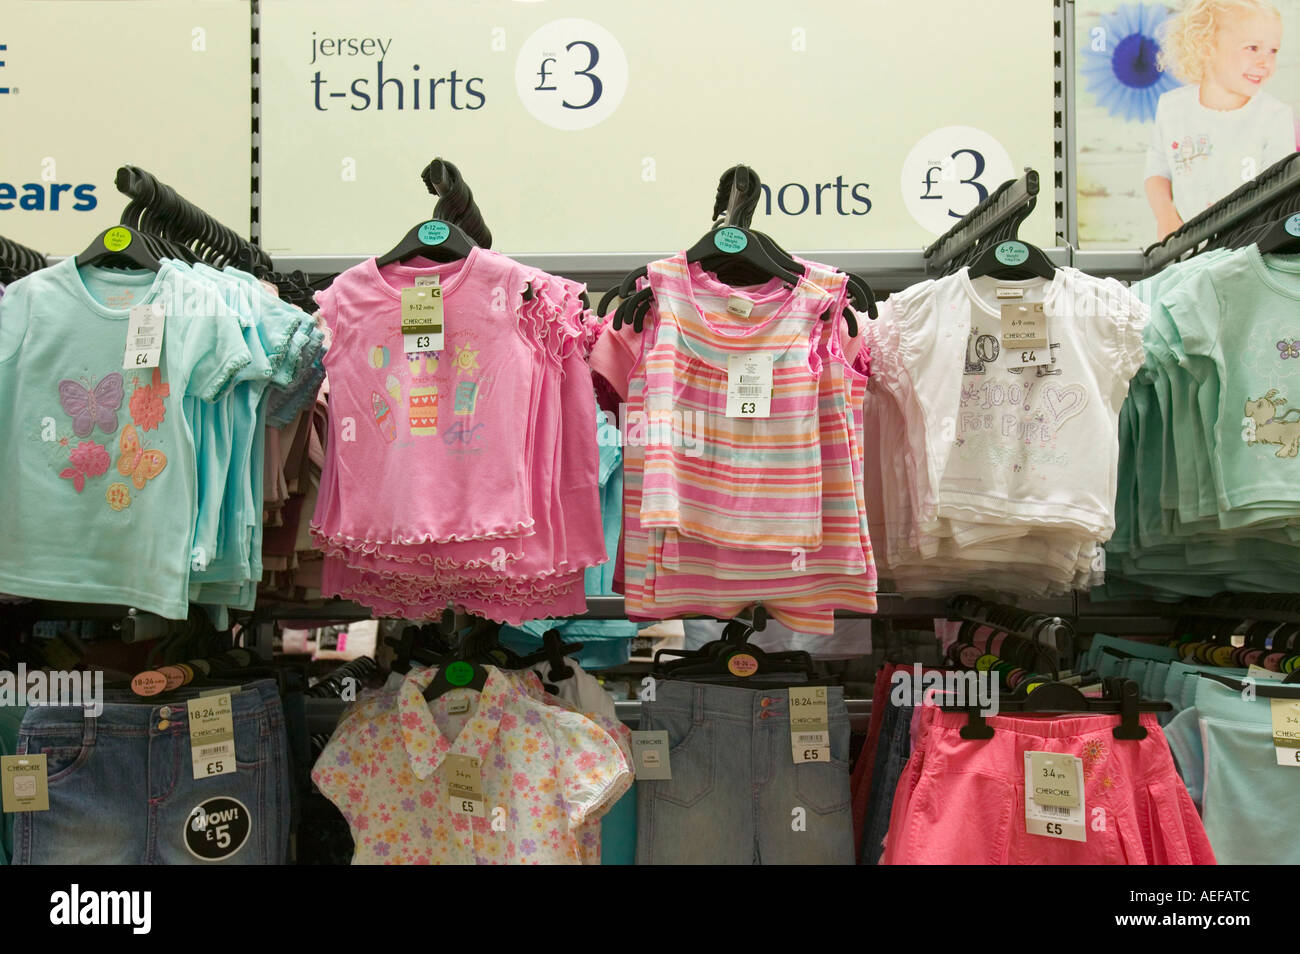 f68c3961fa73 Own Brand Clothes In Tesco Stock Photos & Own Brand Clothes In Tesco ...